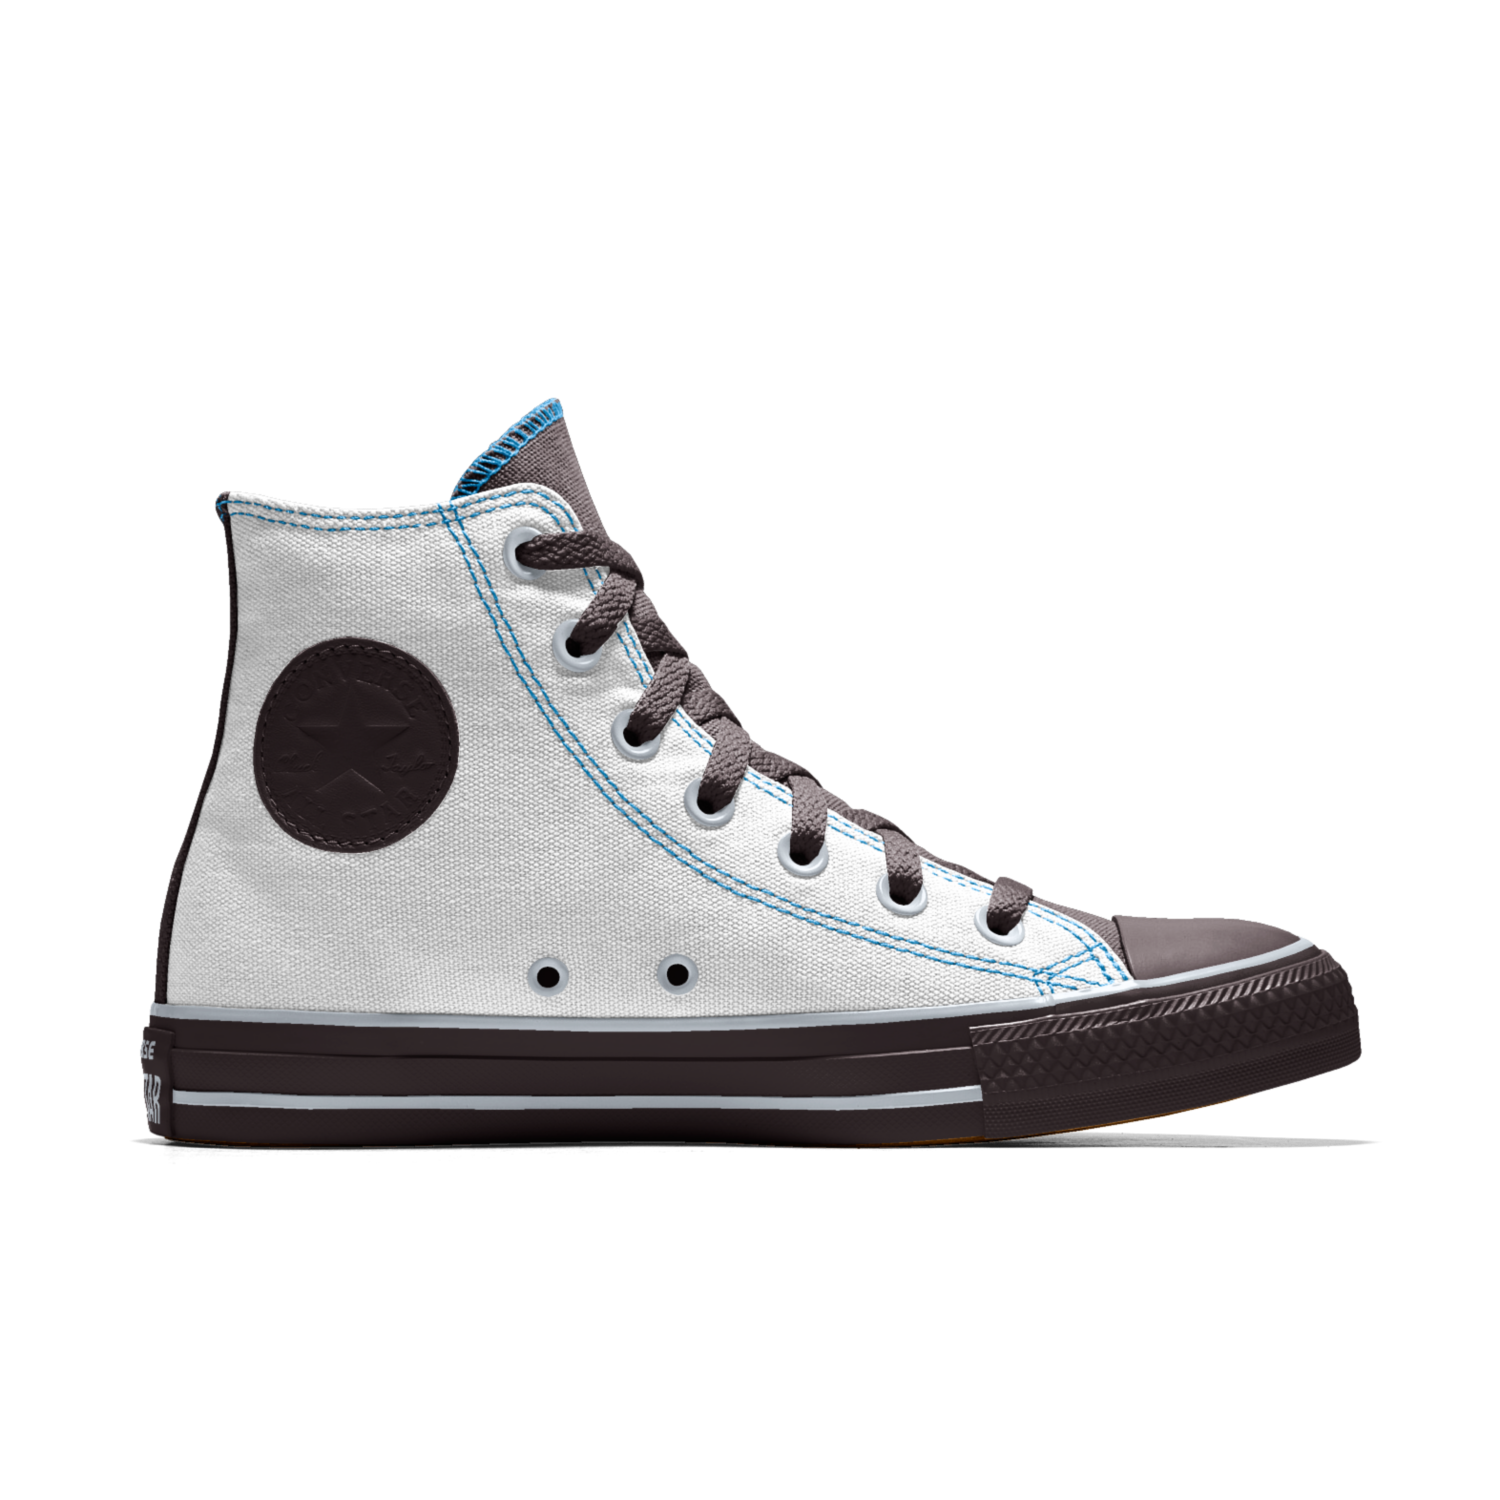 d7e6dcf541 The Converse Custom Chuck Taylor All Star High Top Shoe in 2019 ...